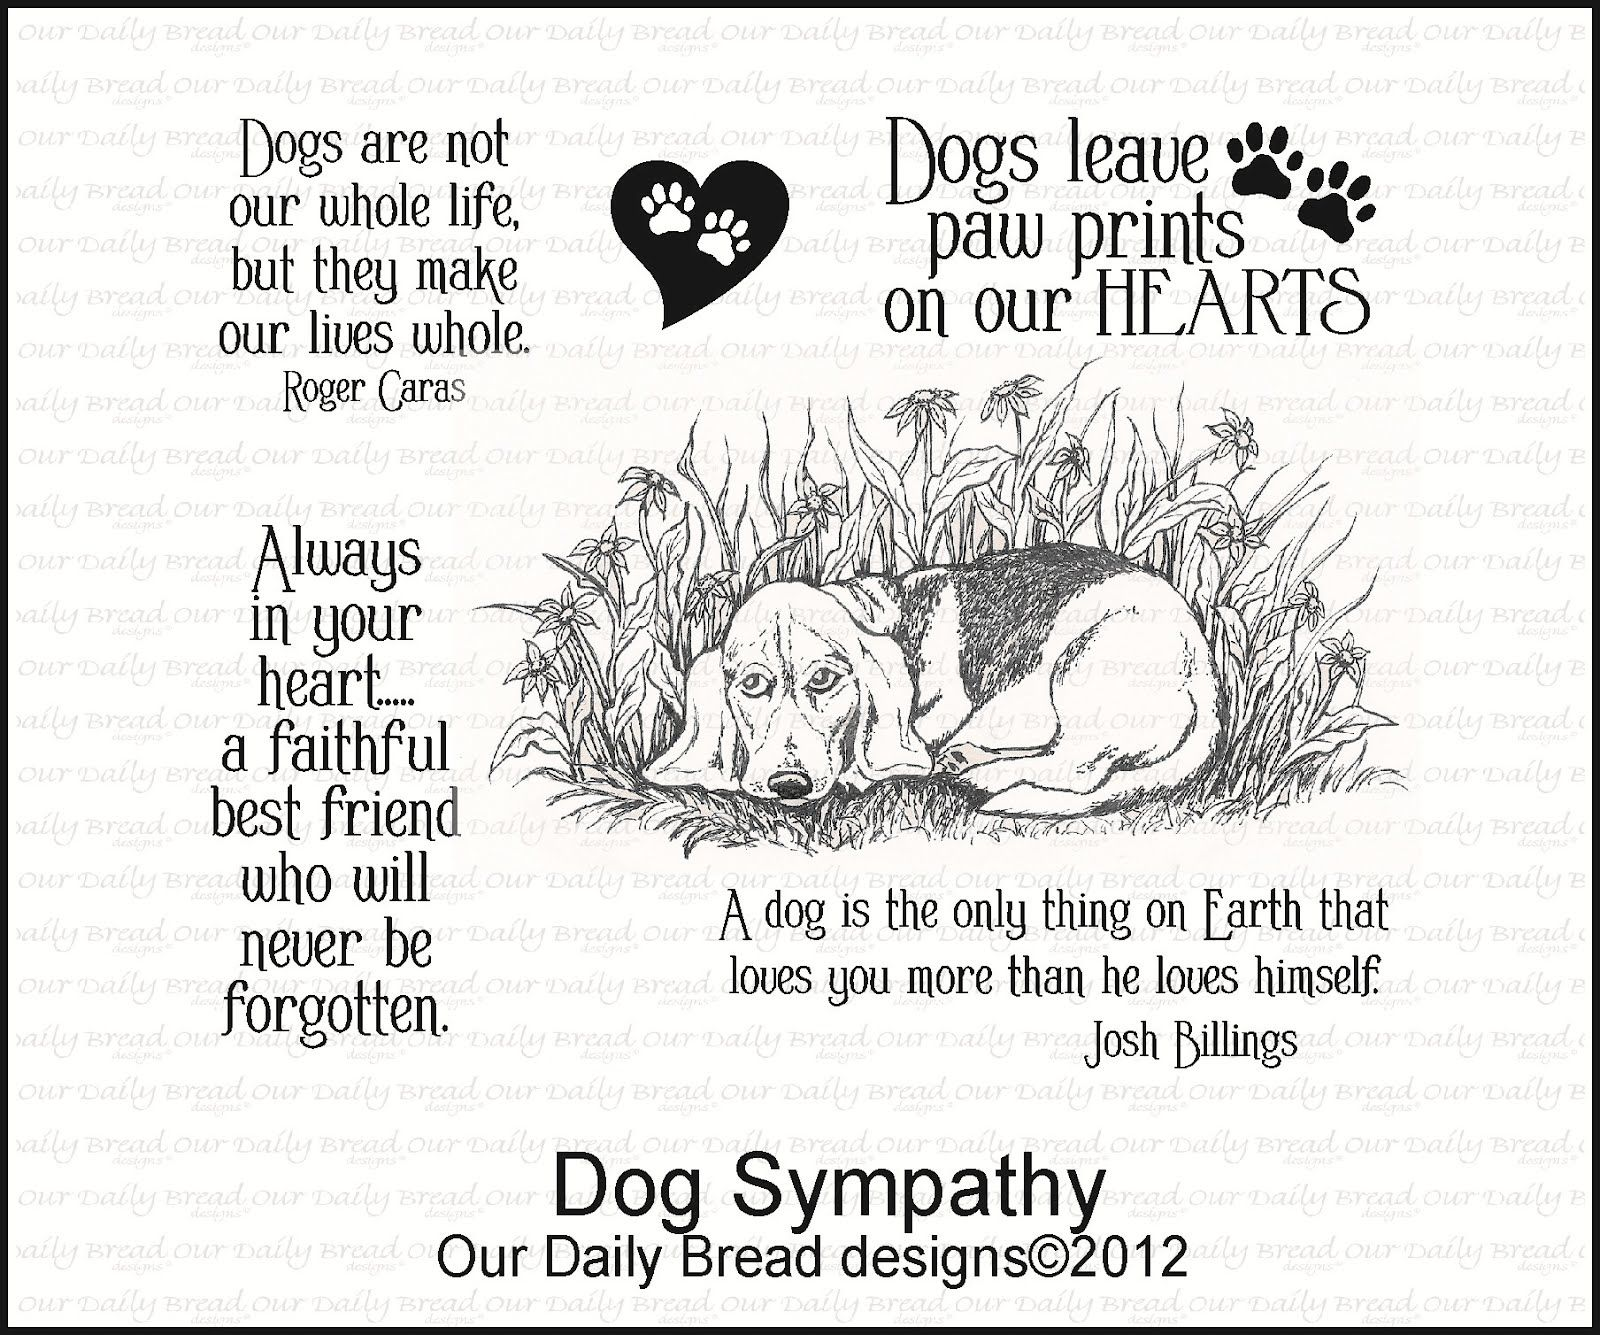 Dog Loss Quotes Sympathy Stamp  Bing Images  Sayings & Quotes  Pinterest  Stamps